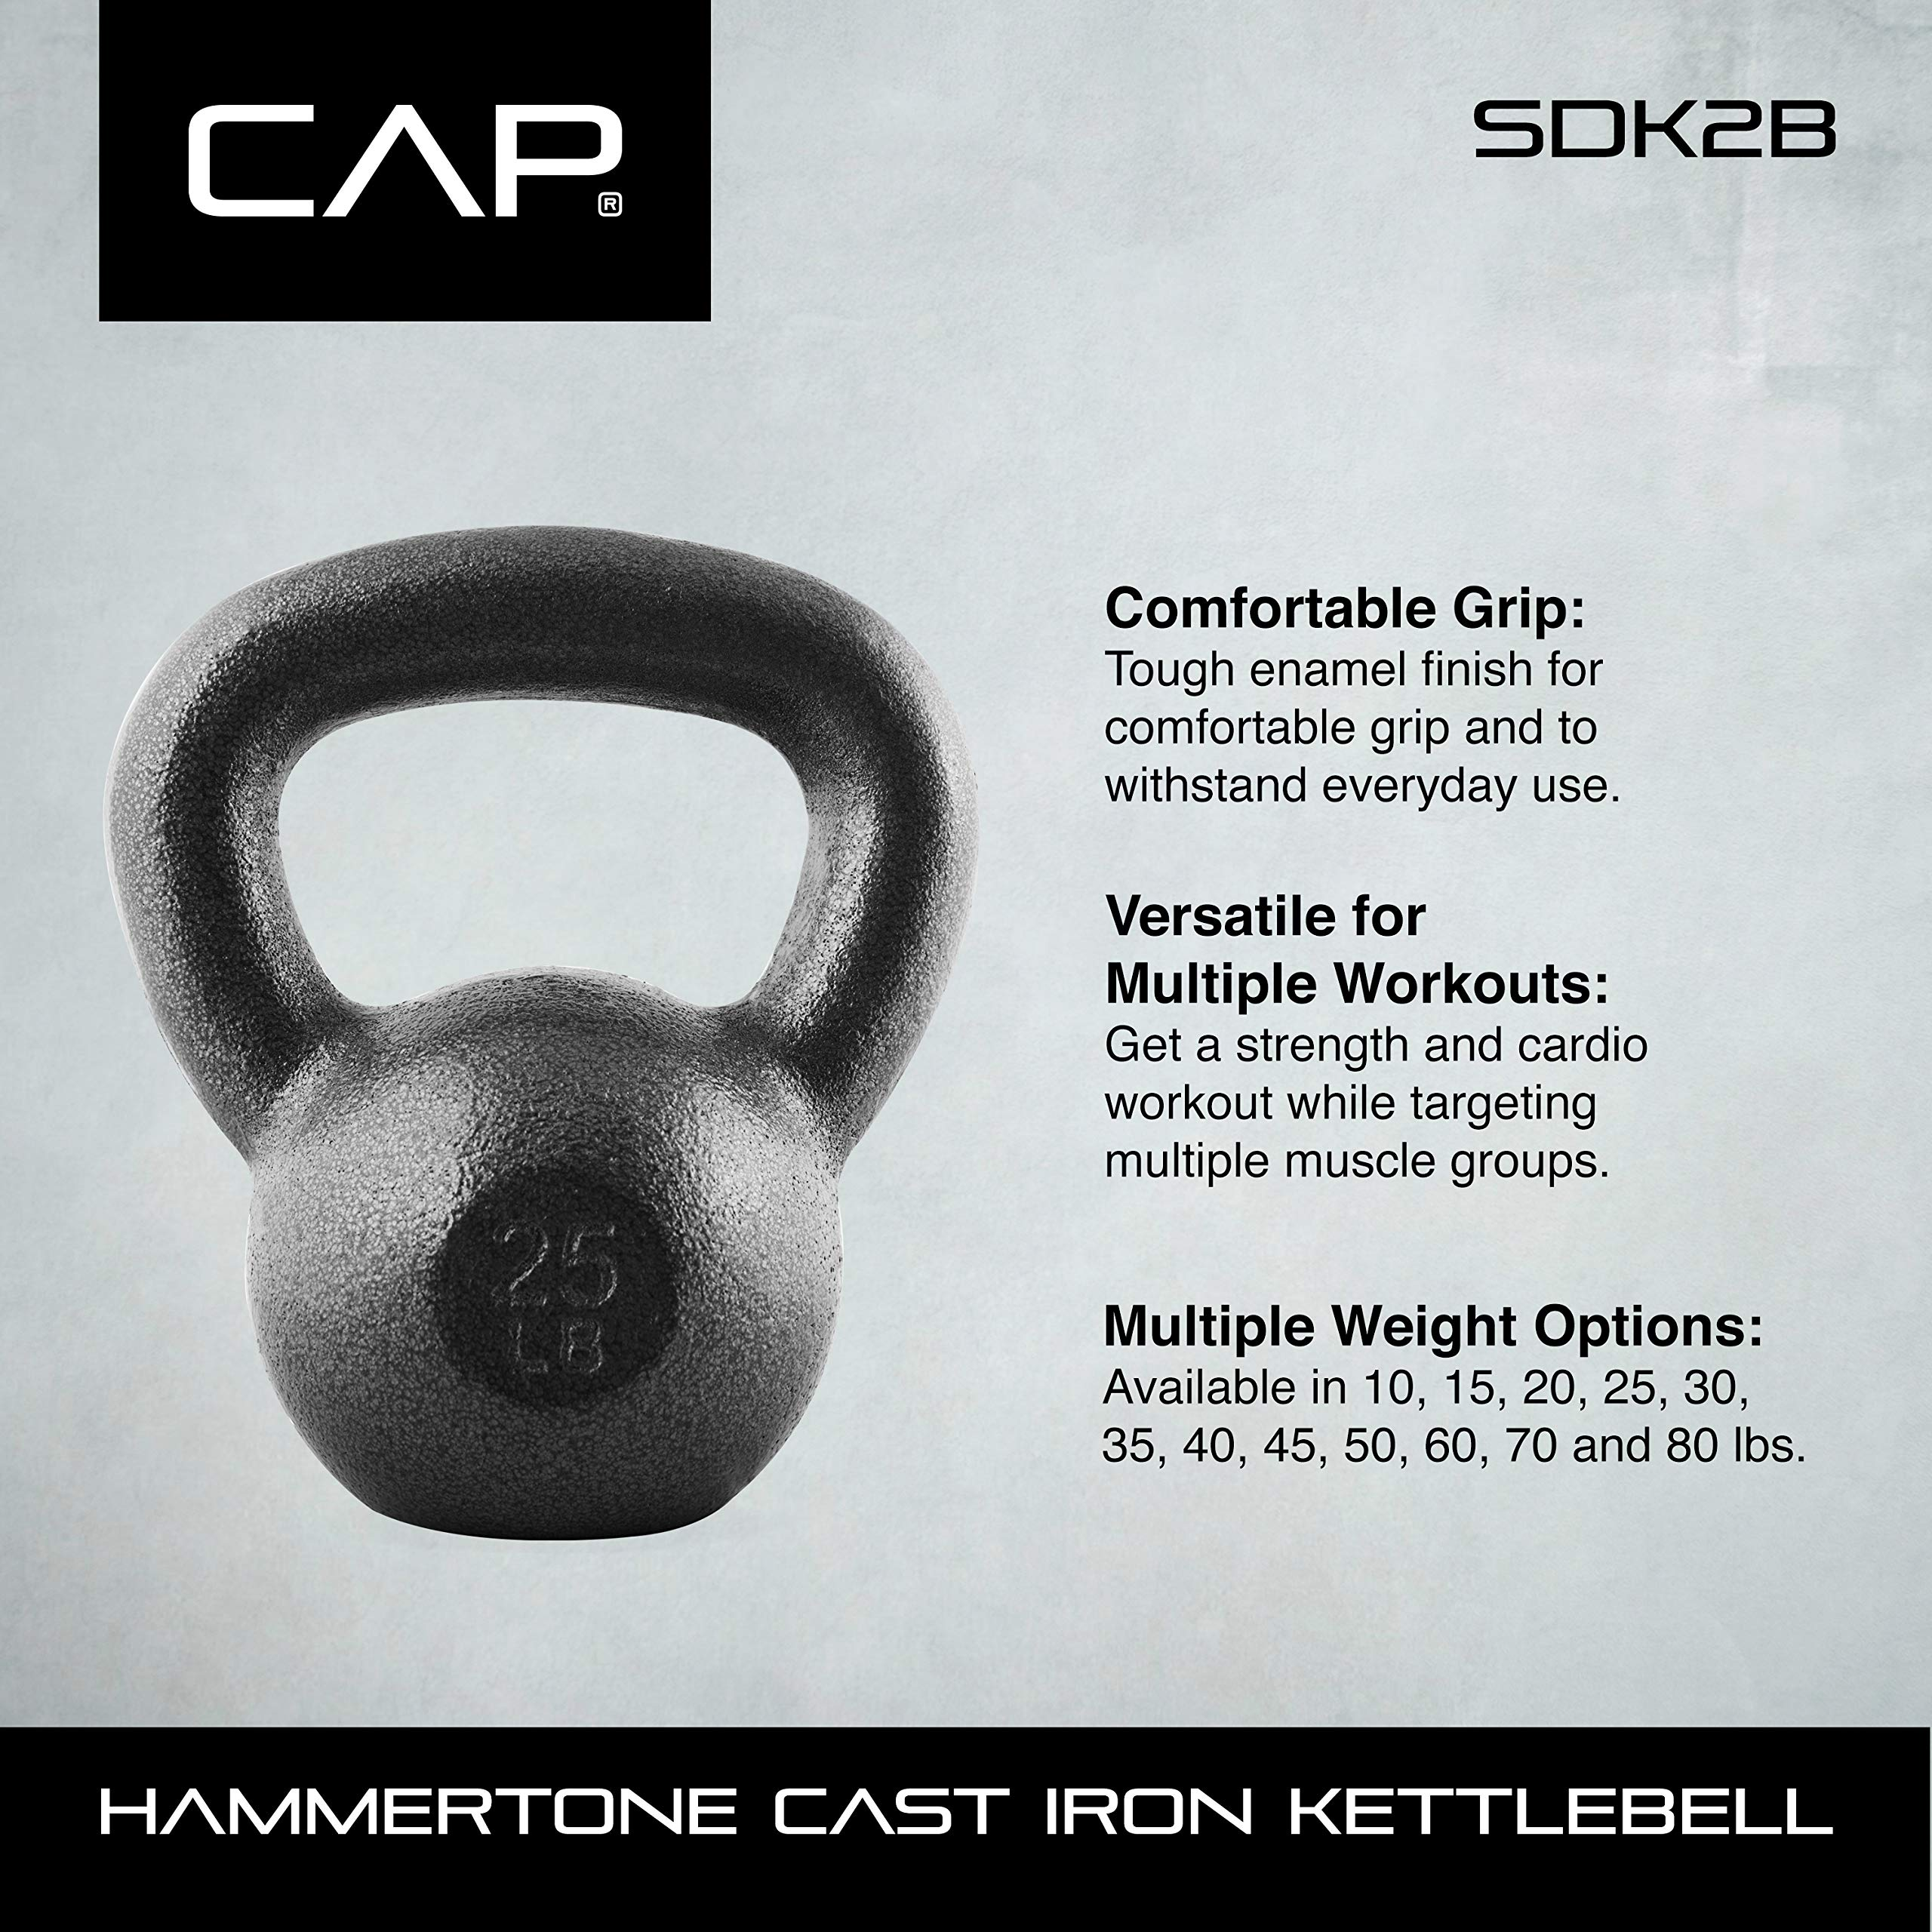 CAP Barbell Cast Iron Kettlebell, Black, 10 lb. by CAP Barbell (Image #7)